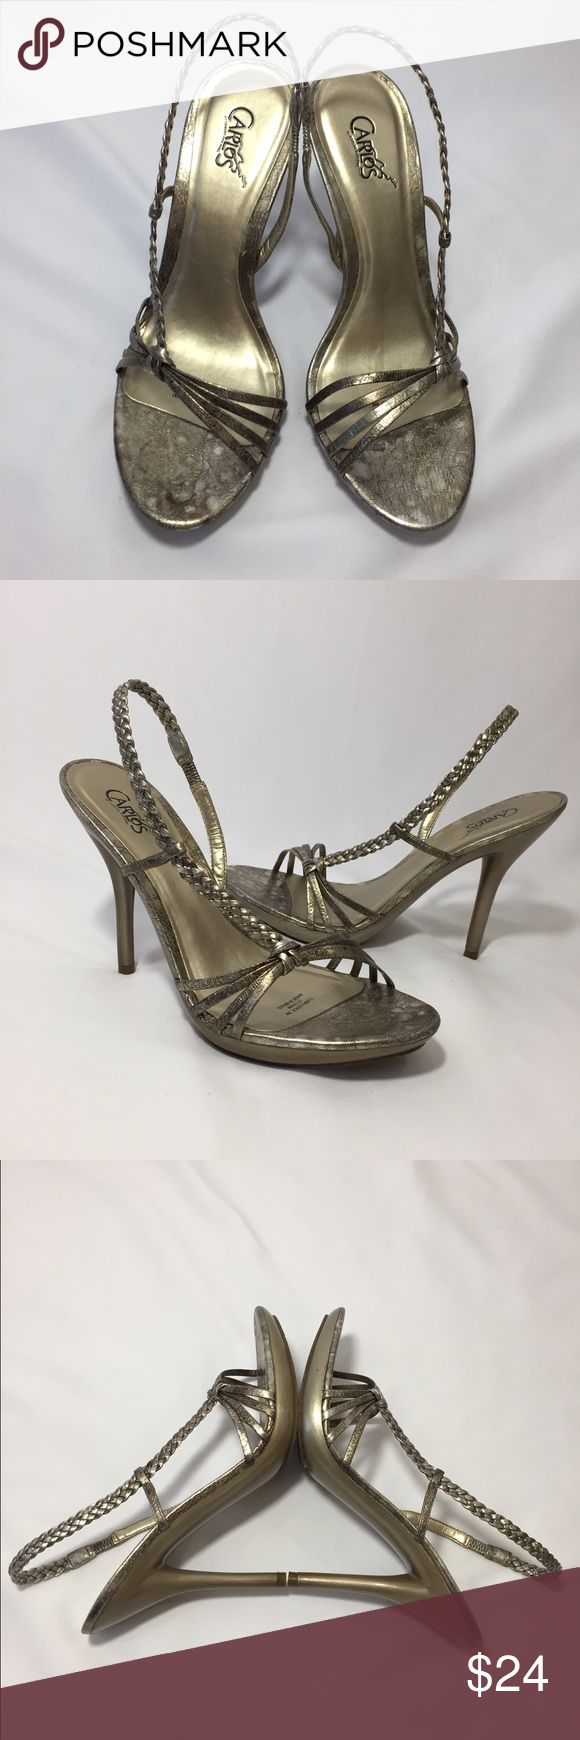 "CARLOS SANTANA pewter gold 3"" heels size 8M Used once indoors! CARLOS by CARLOS SANTANA Pewter gold open toe sling back 3 inch sandal heels size 8M. Excellent used condition!! Carlos Santana Shoes Heels"